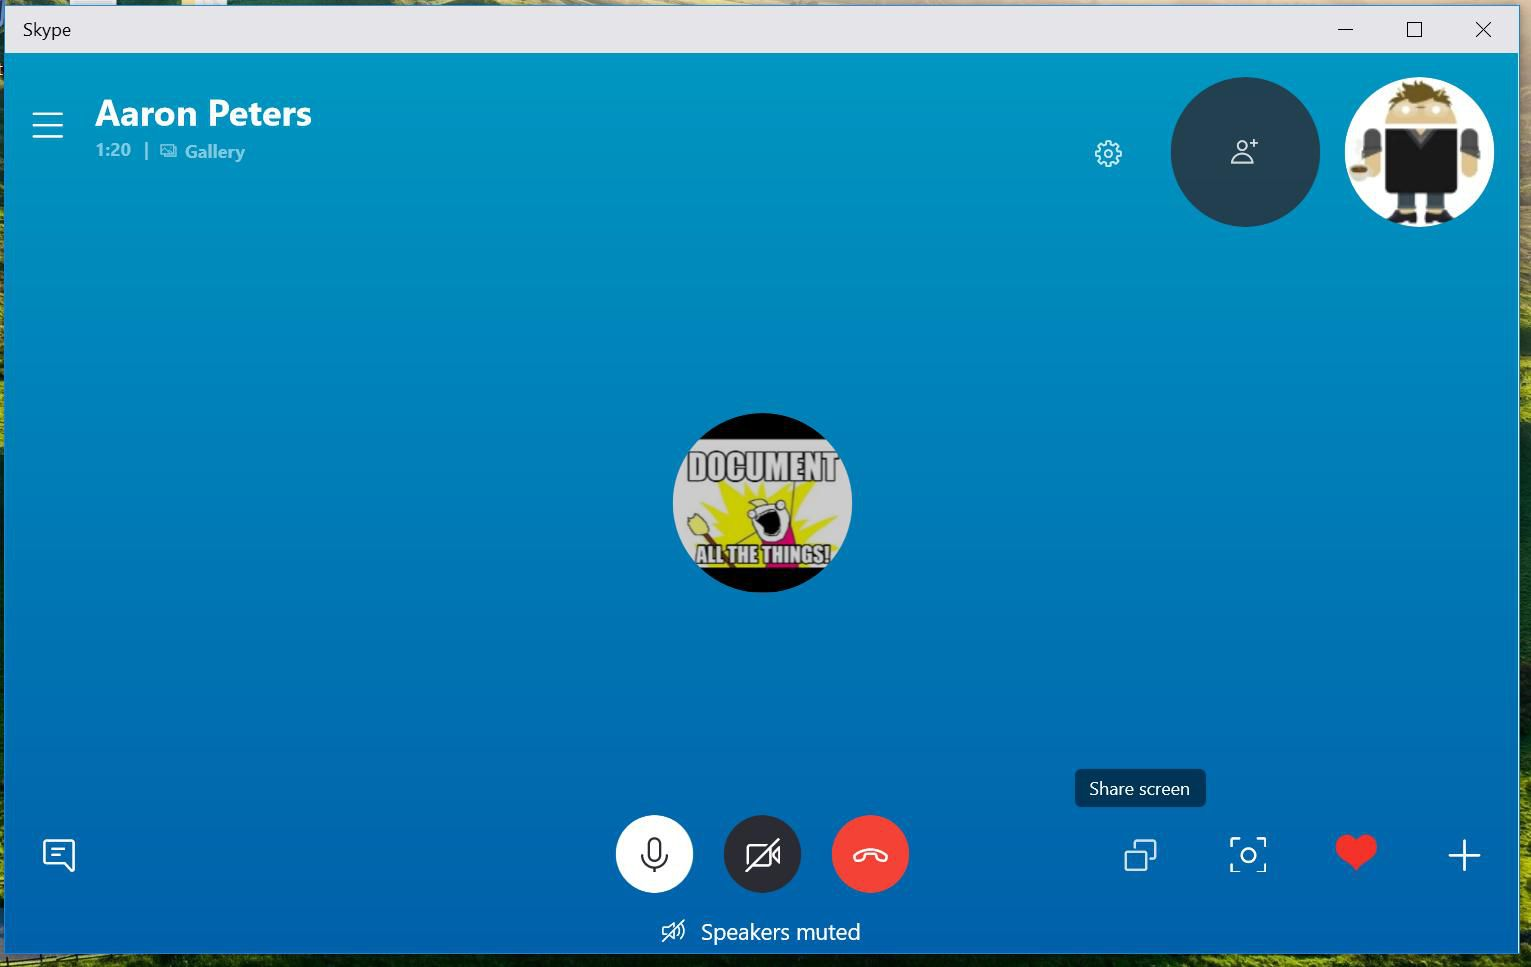 How to Share a Screen on Skype